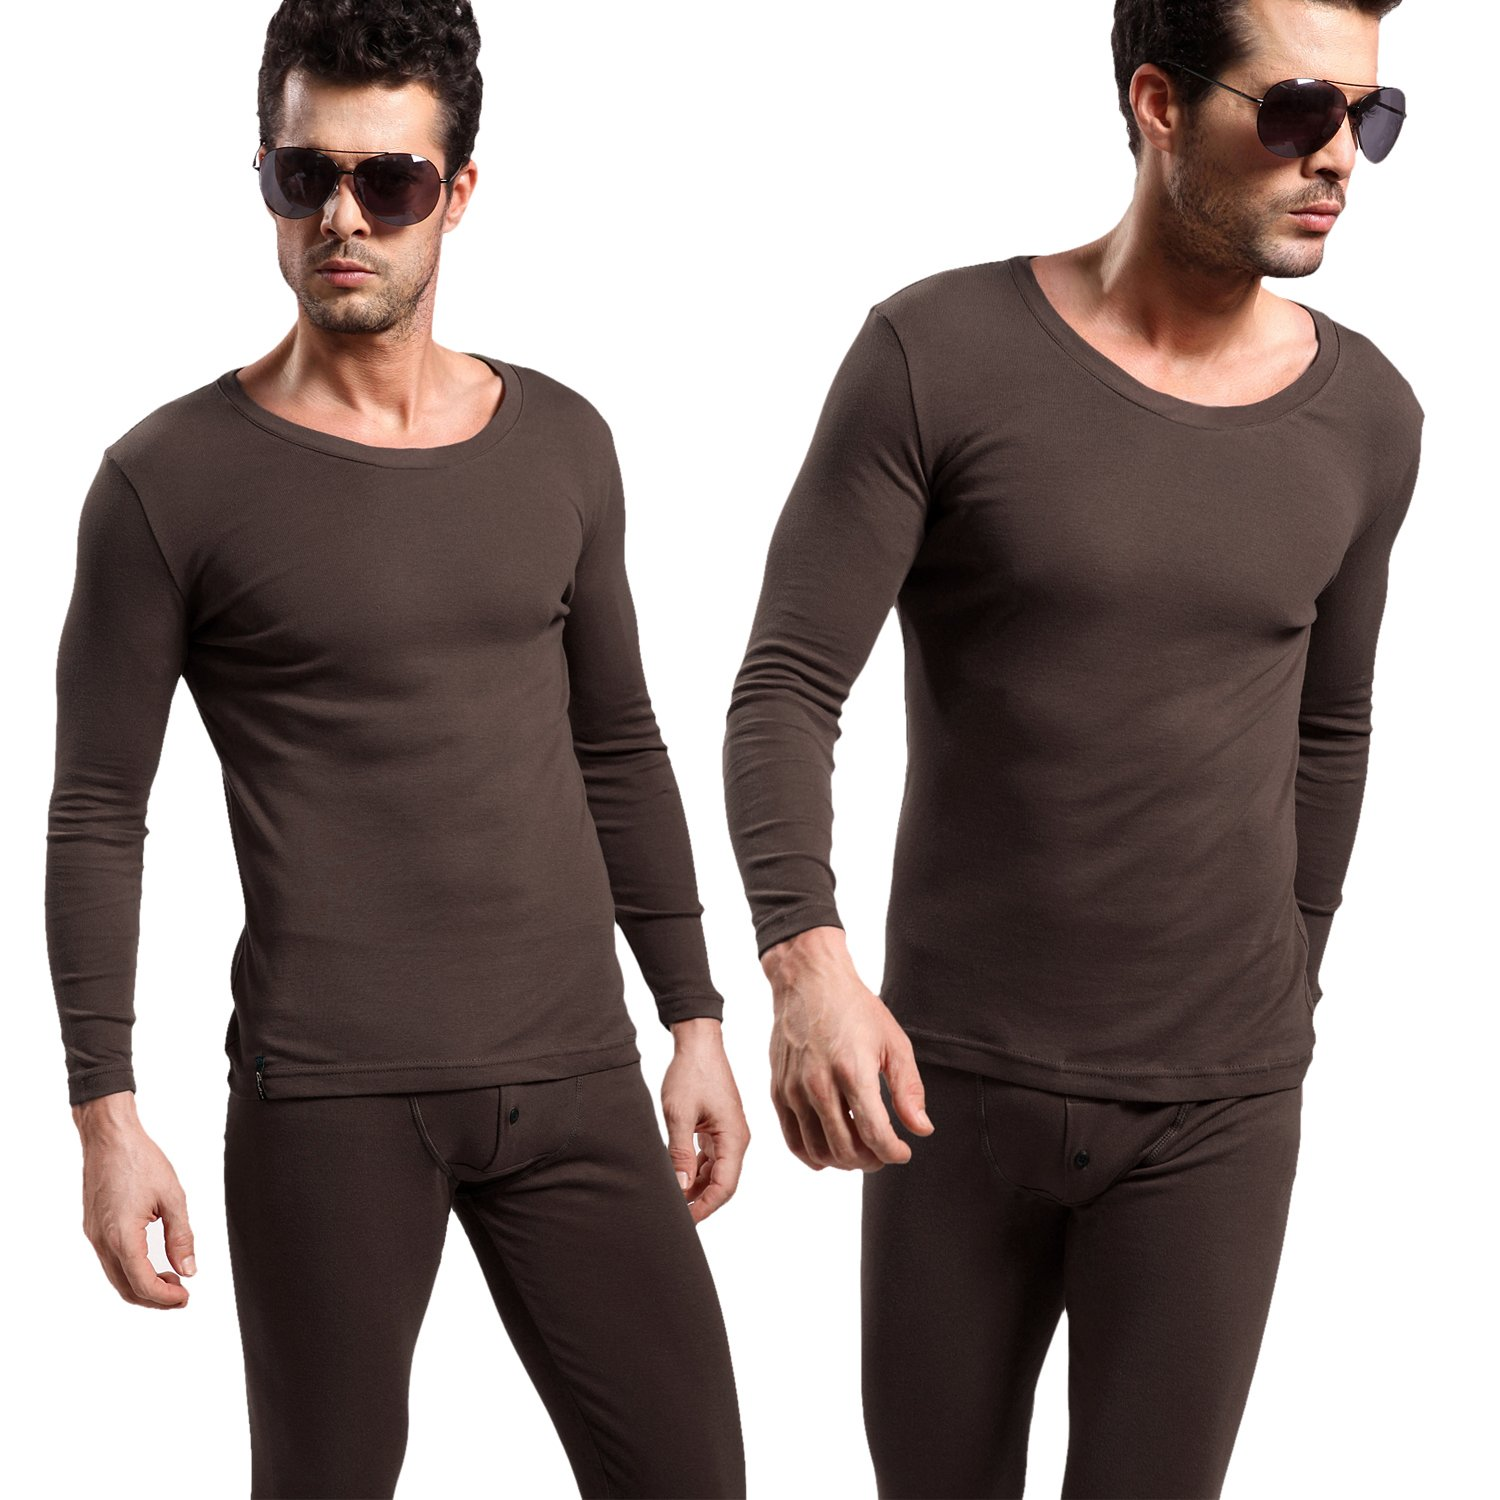 Godsen Men's 2 Piece Long Johns Cotton Thermal Underwear Set Coffee XS-XL 8521801